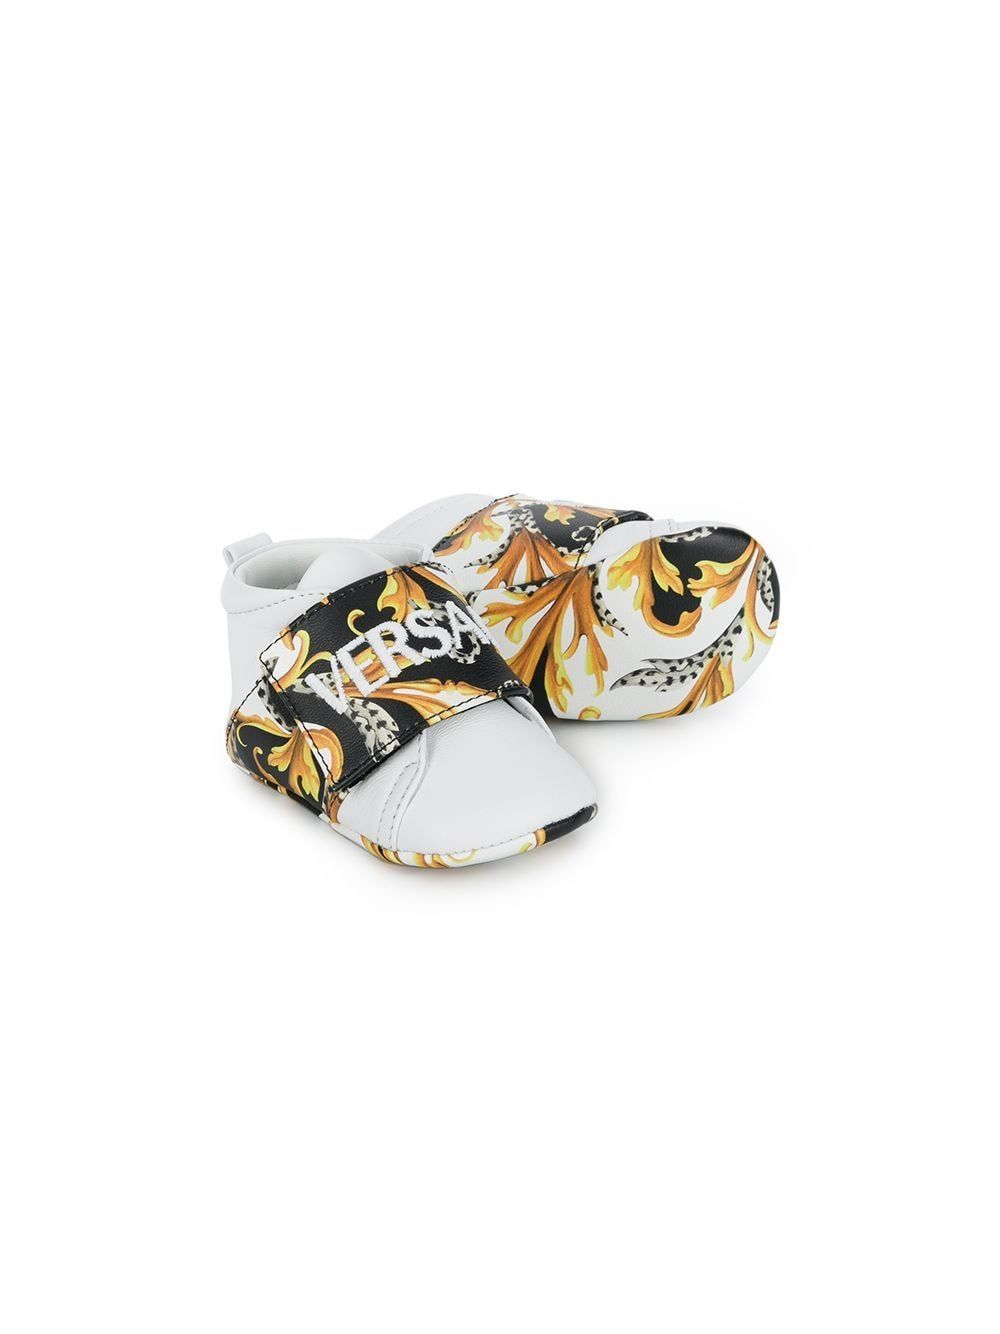 VERSACE KIDS Baby Baroque Print Sneakers White/Gold